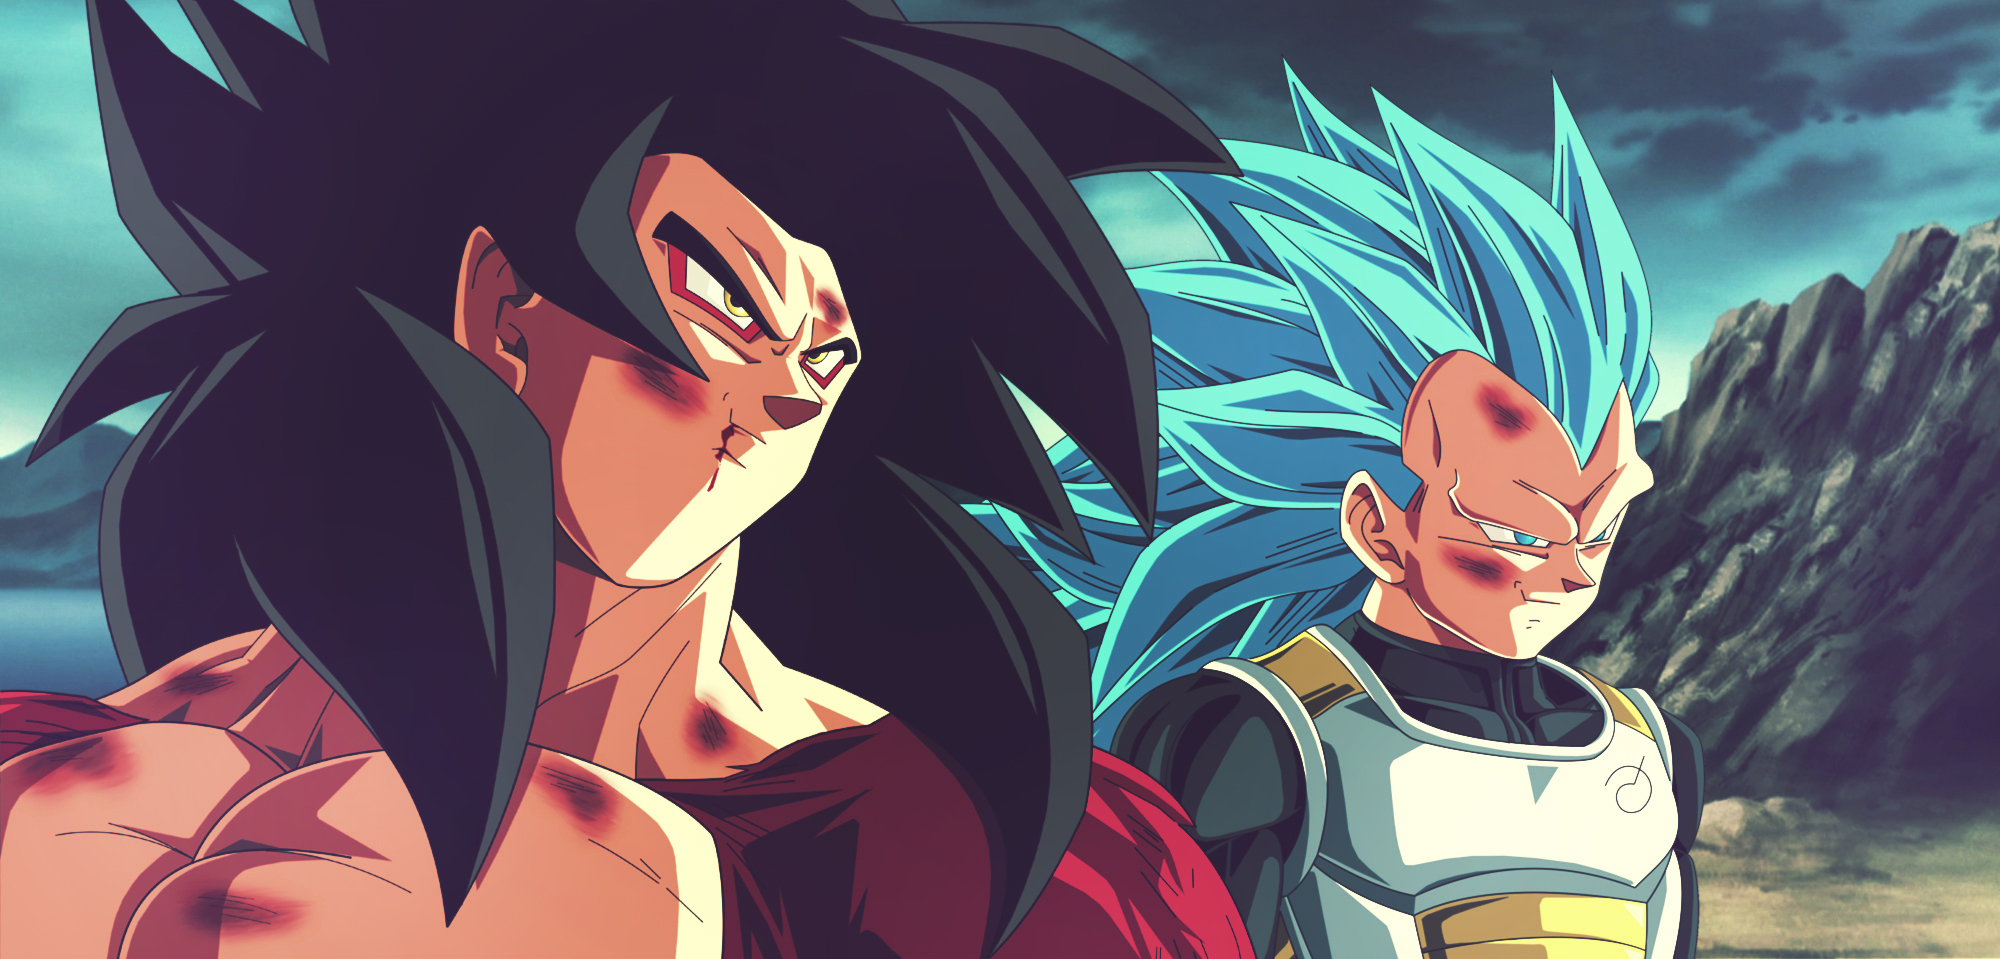 Dragon Ball Super Wallpaper Android: Fondos De Dragon Ball Super, Wallpapers Dragon Ball Z